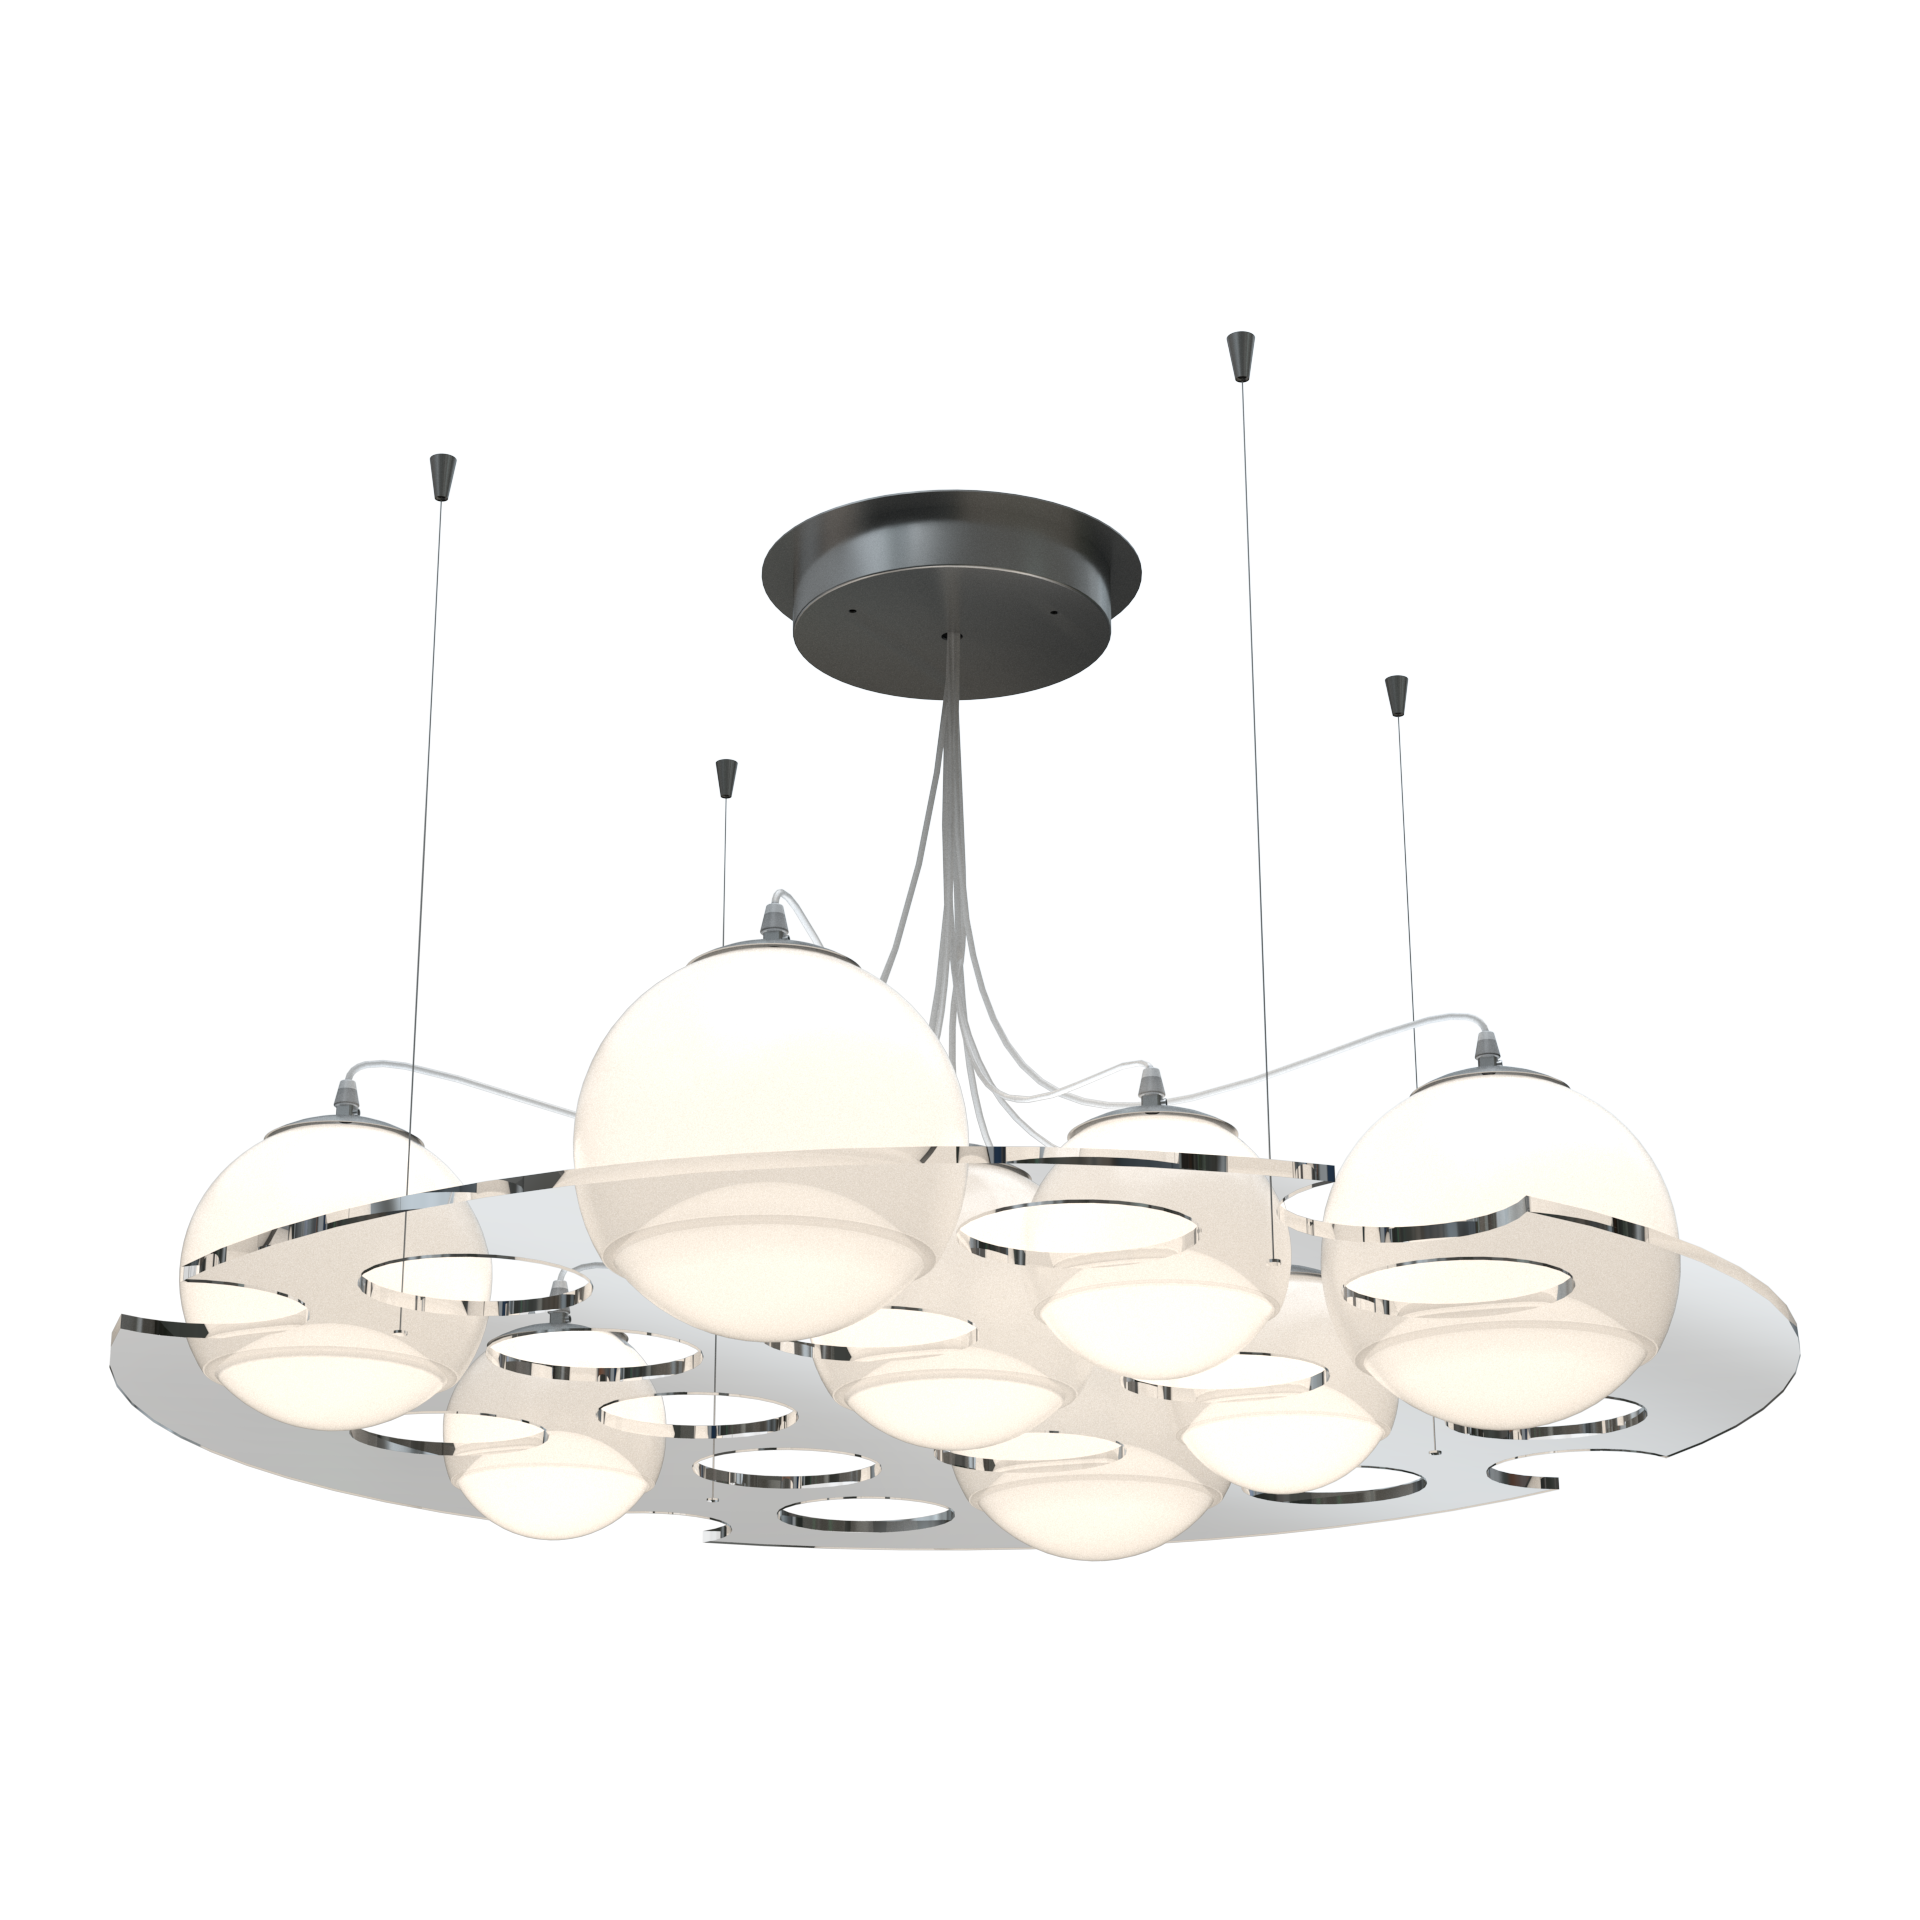 Suspension Light AI 02 Preview 2.png